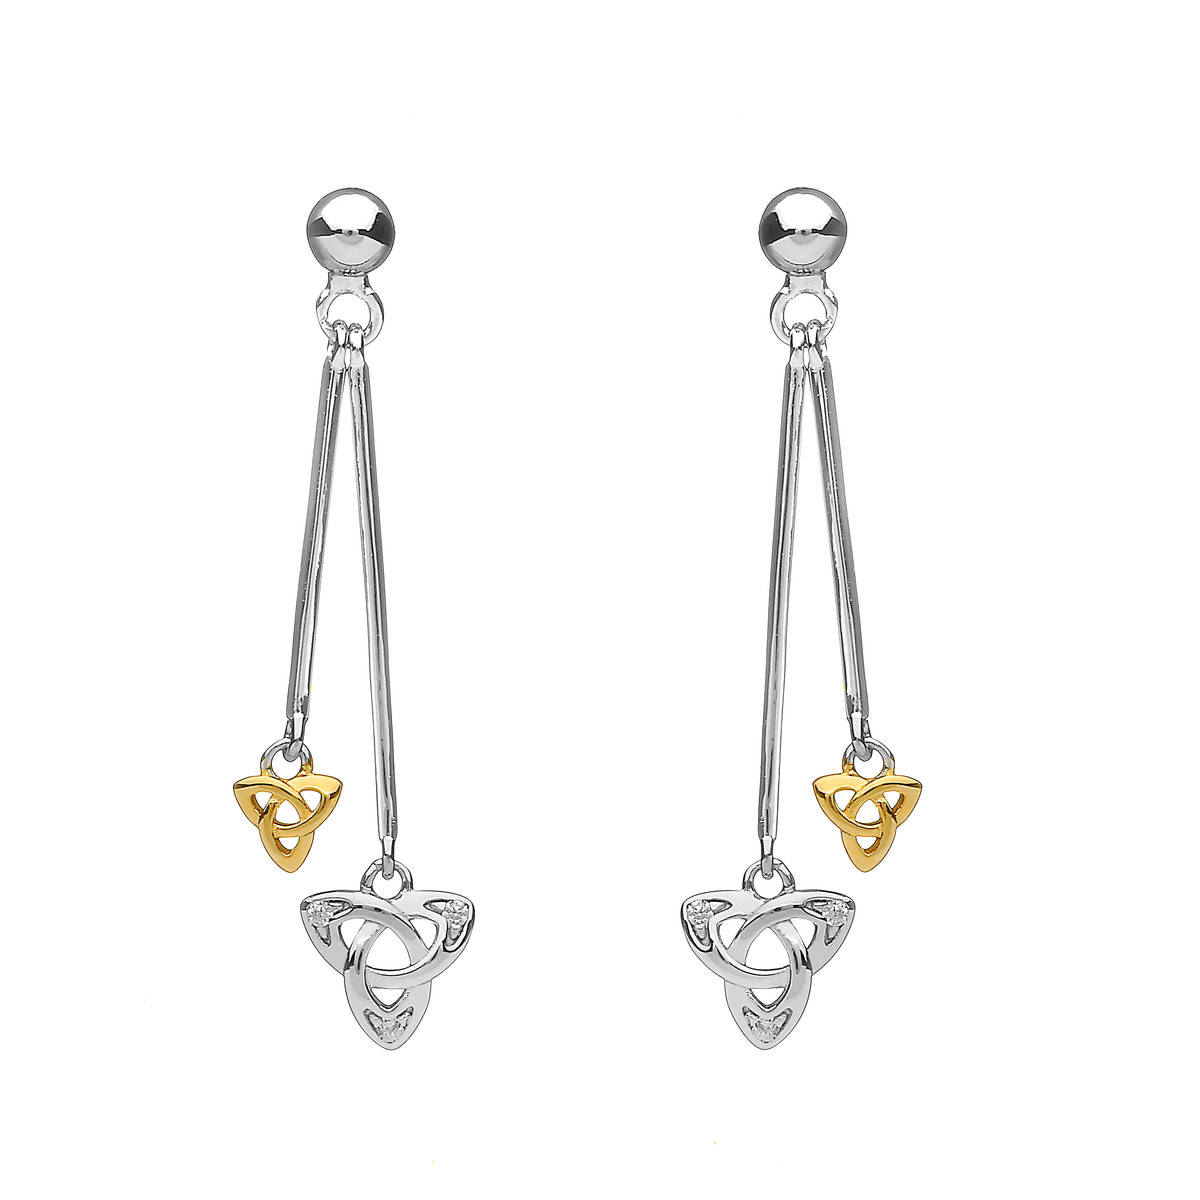 Silver Double Hanging Cz Trinity Earrings With One Ygp Trinity Knot